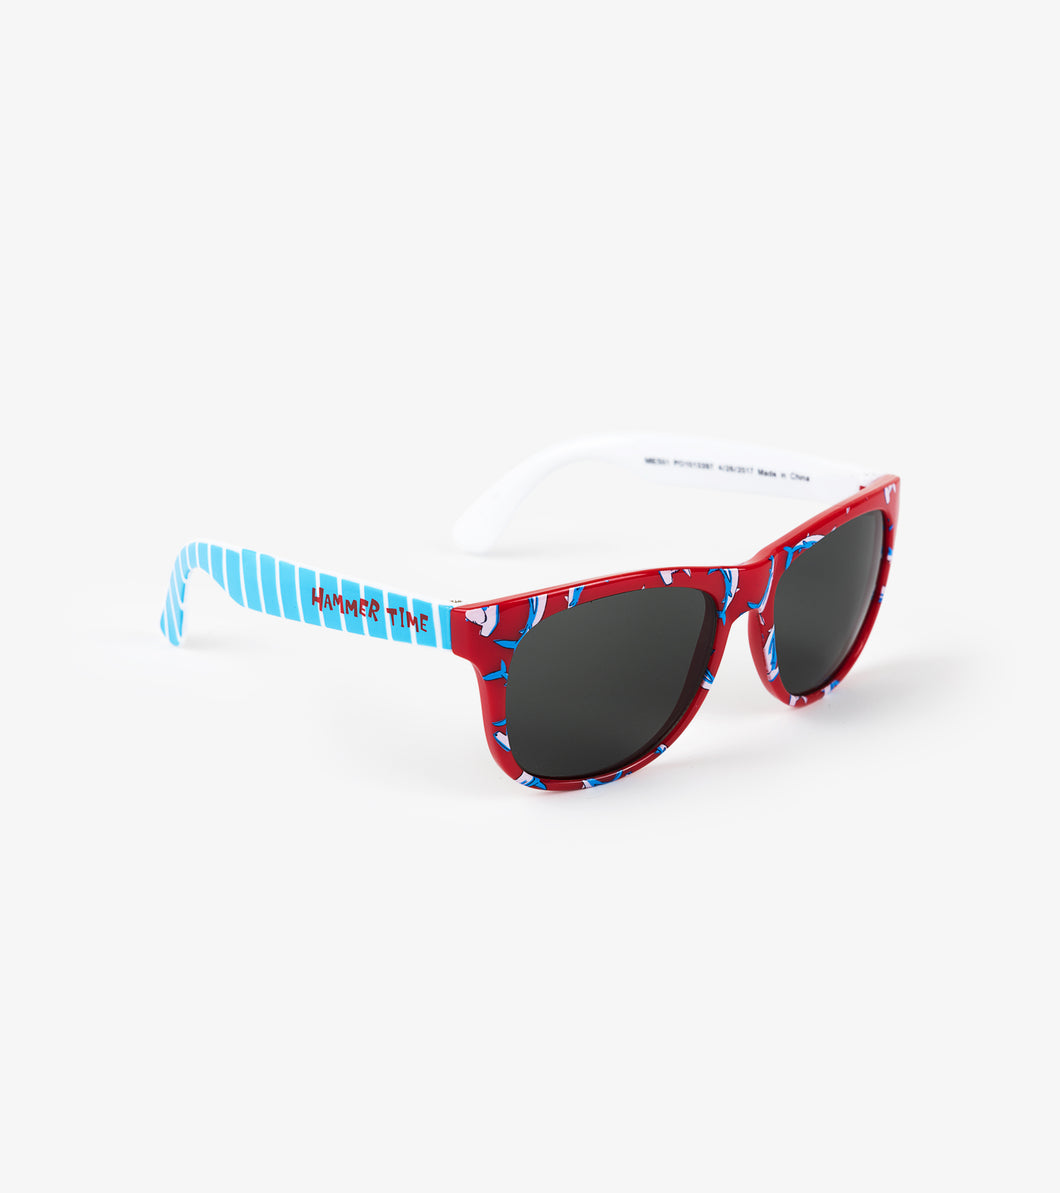 Loop-The-Looping Hammerheads Sunglasses